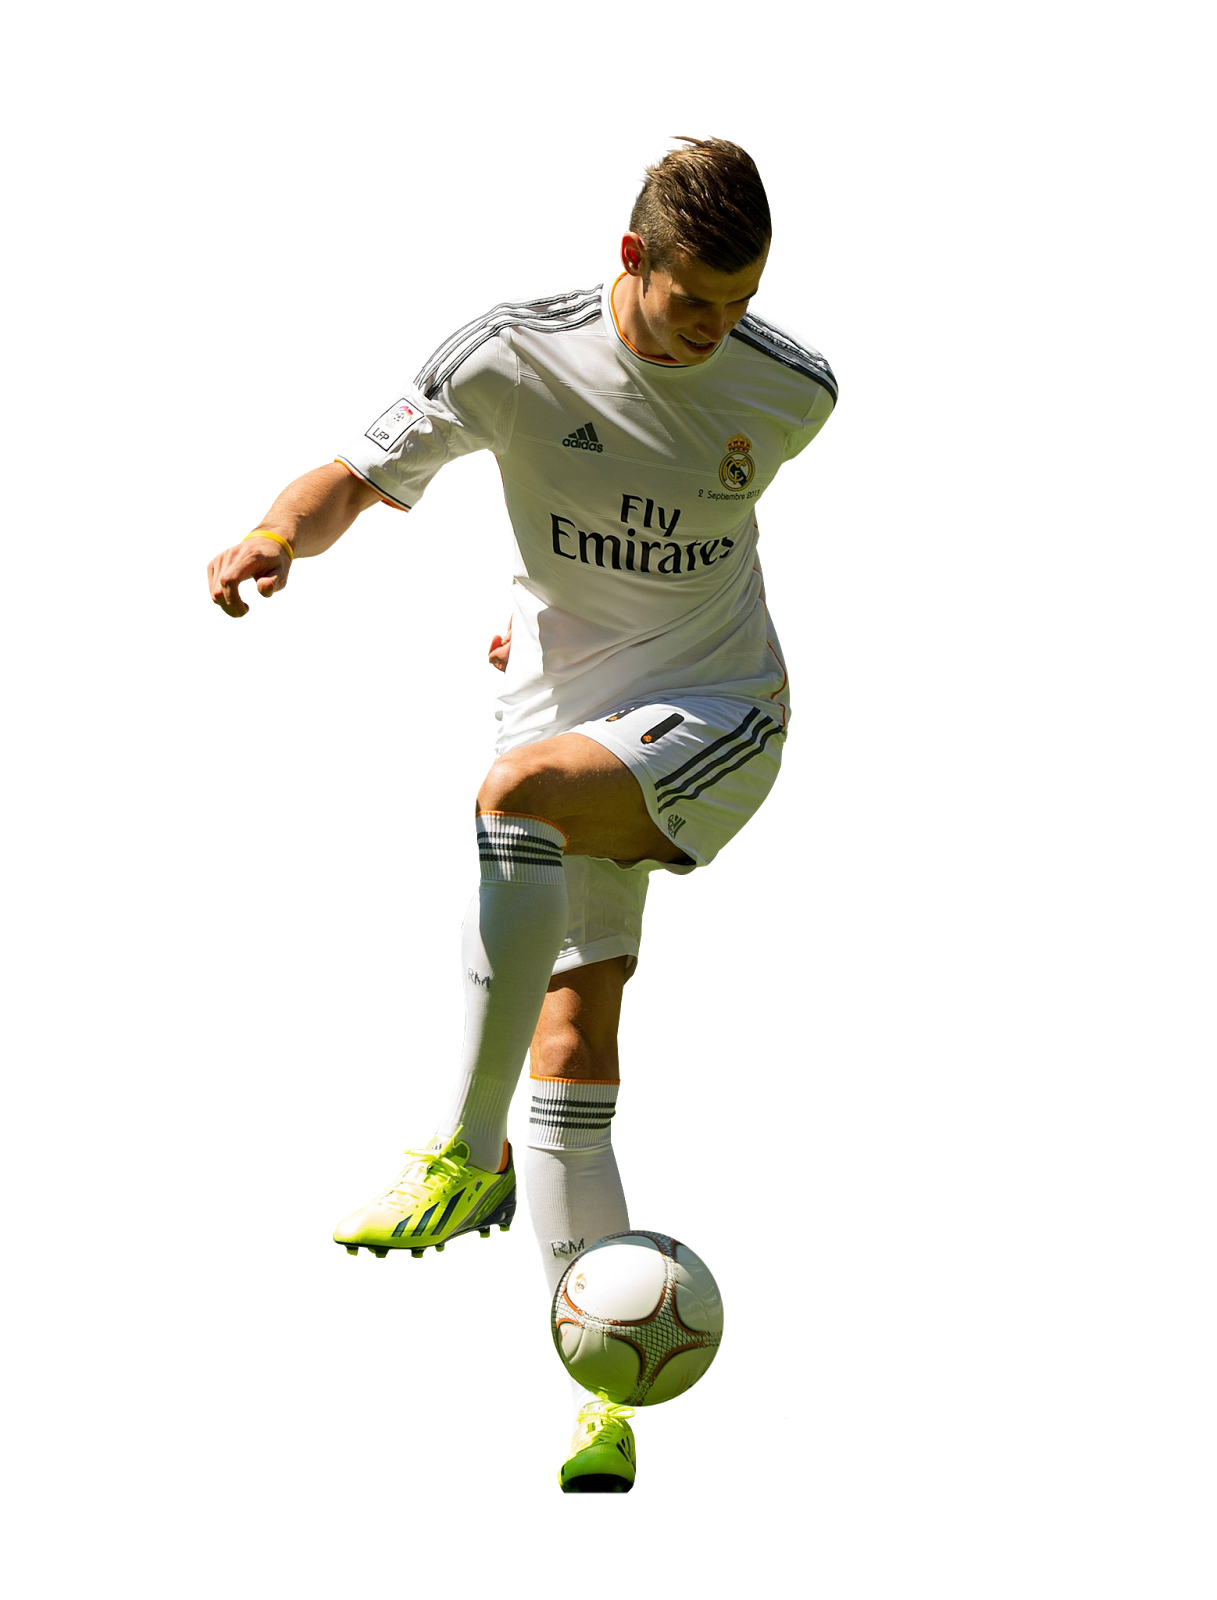 Render accesorios y wallpapers real madrid for Correo real madrid